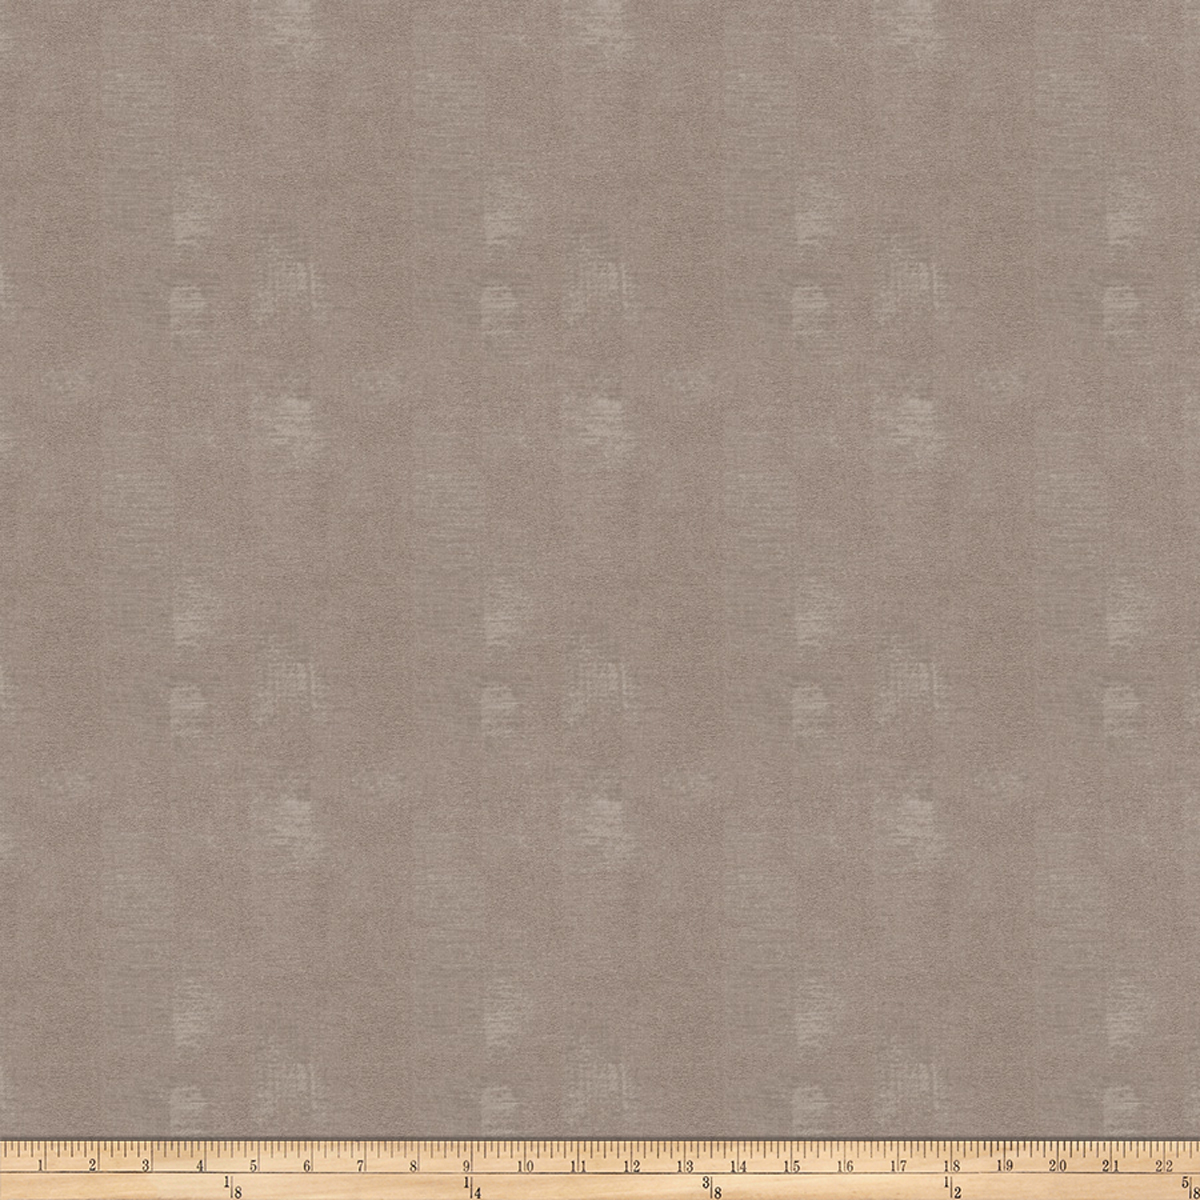 Image of Trend 03482 Crepe Jacquard Damask Steel Fabric